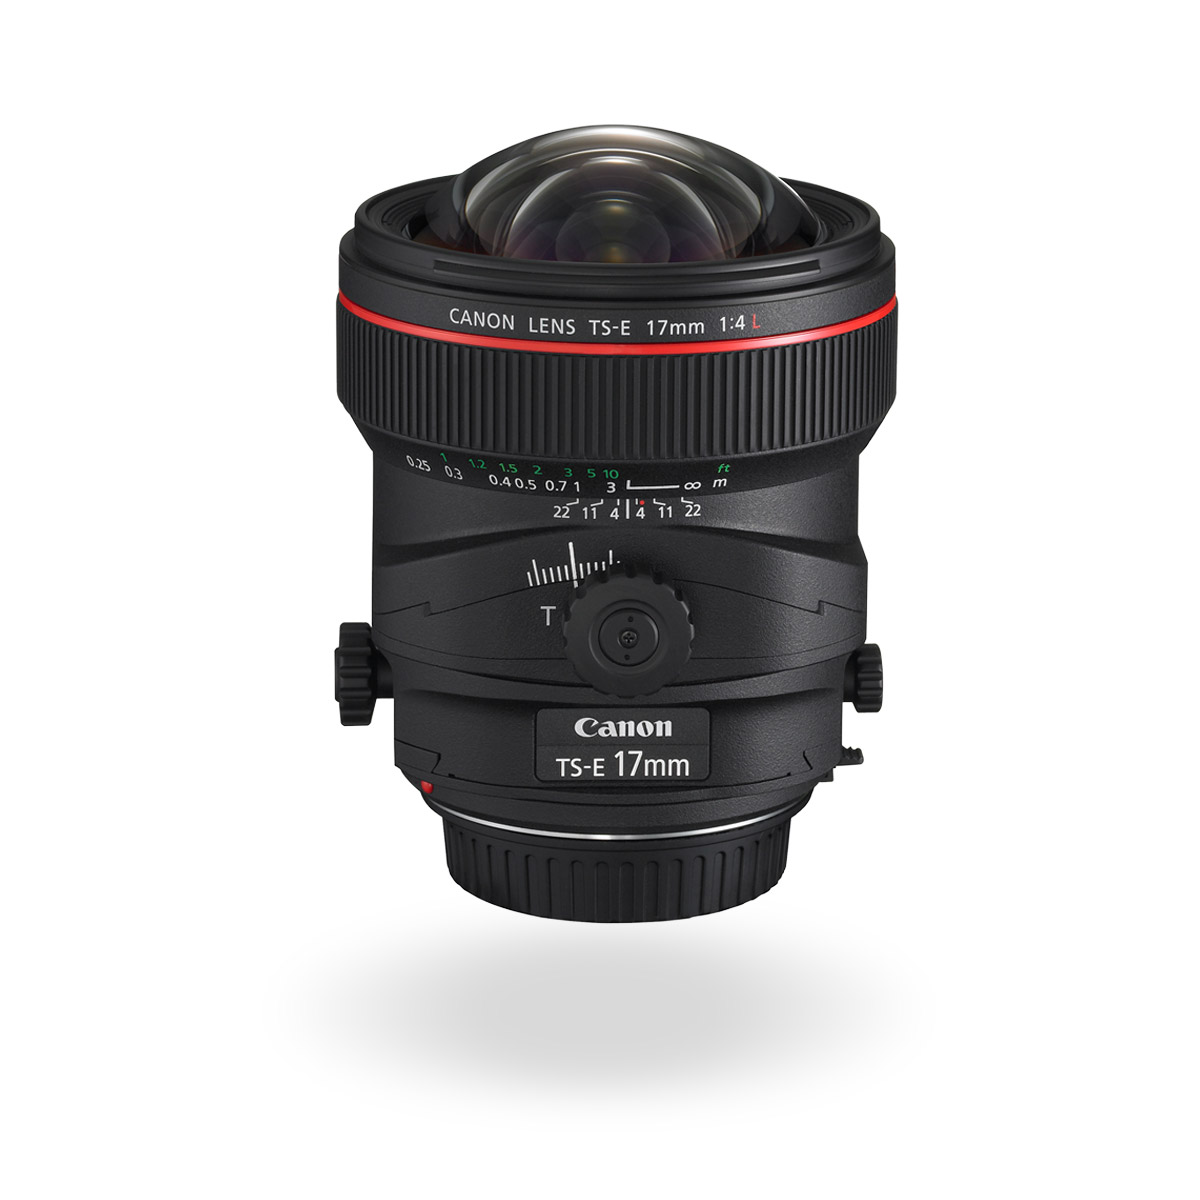 TS-E 90mm f/2.8 Tilt Shift lens